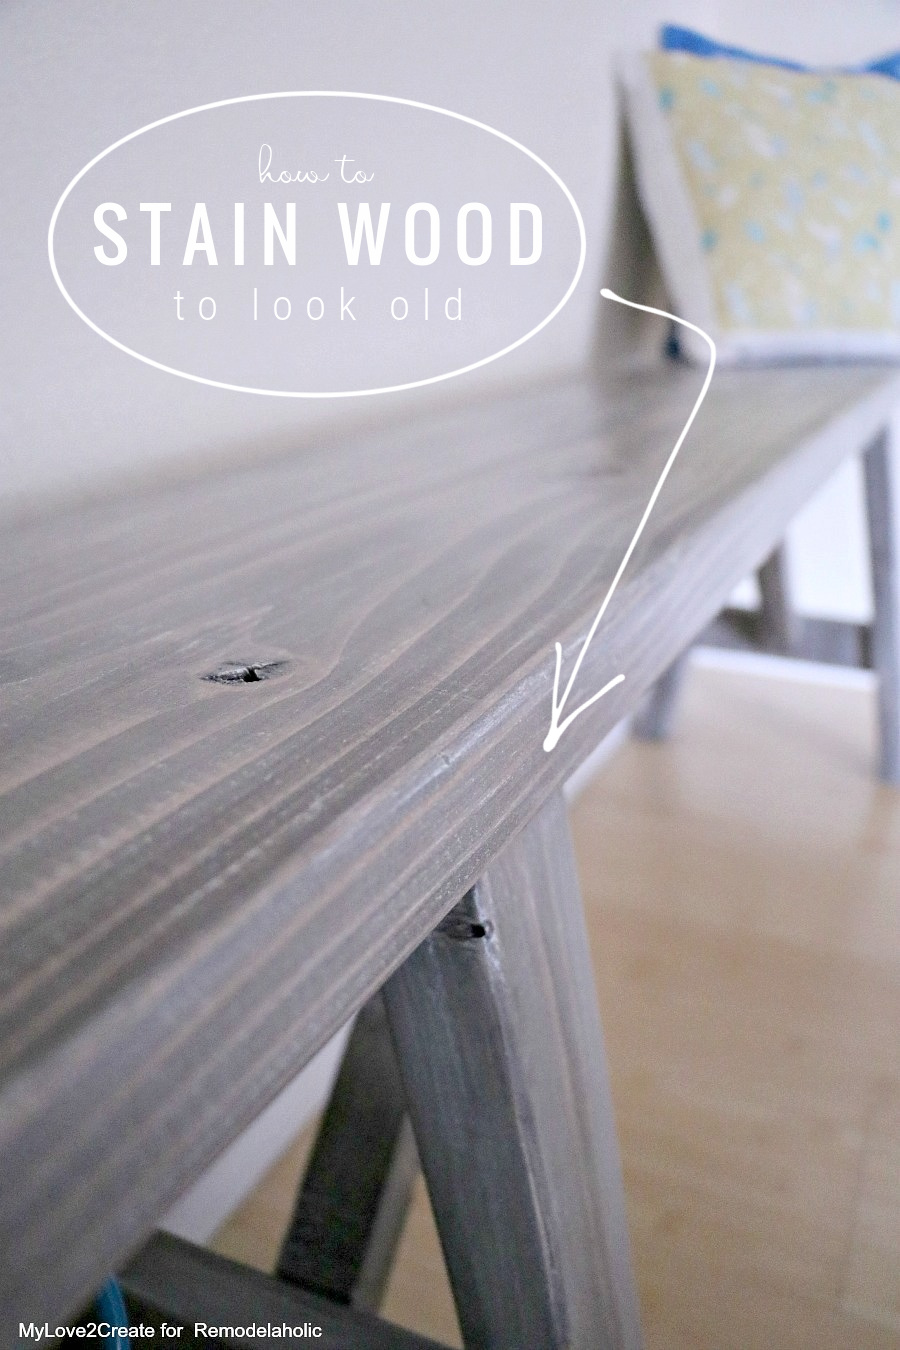 How To Stain Wood To Look Old For A DIY Farmhouse Furniture Finish, MyLove2Create For Remodelaholic